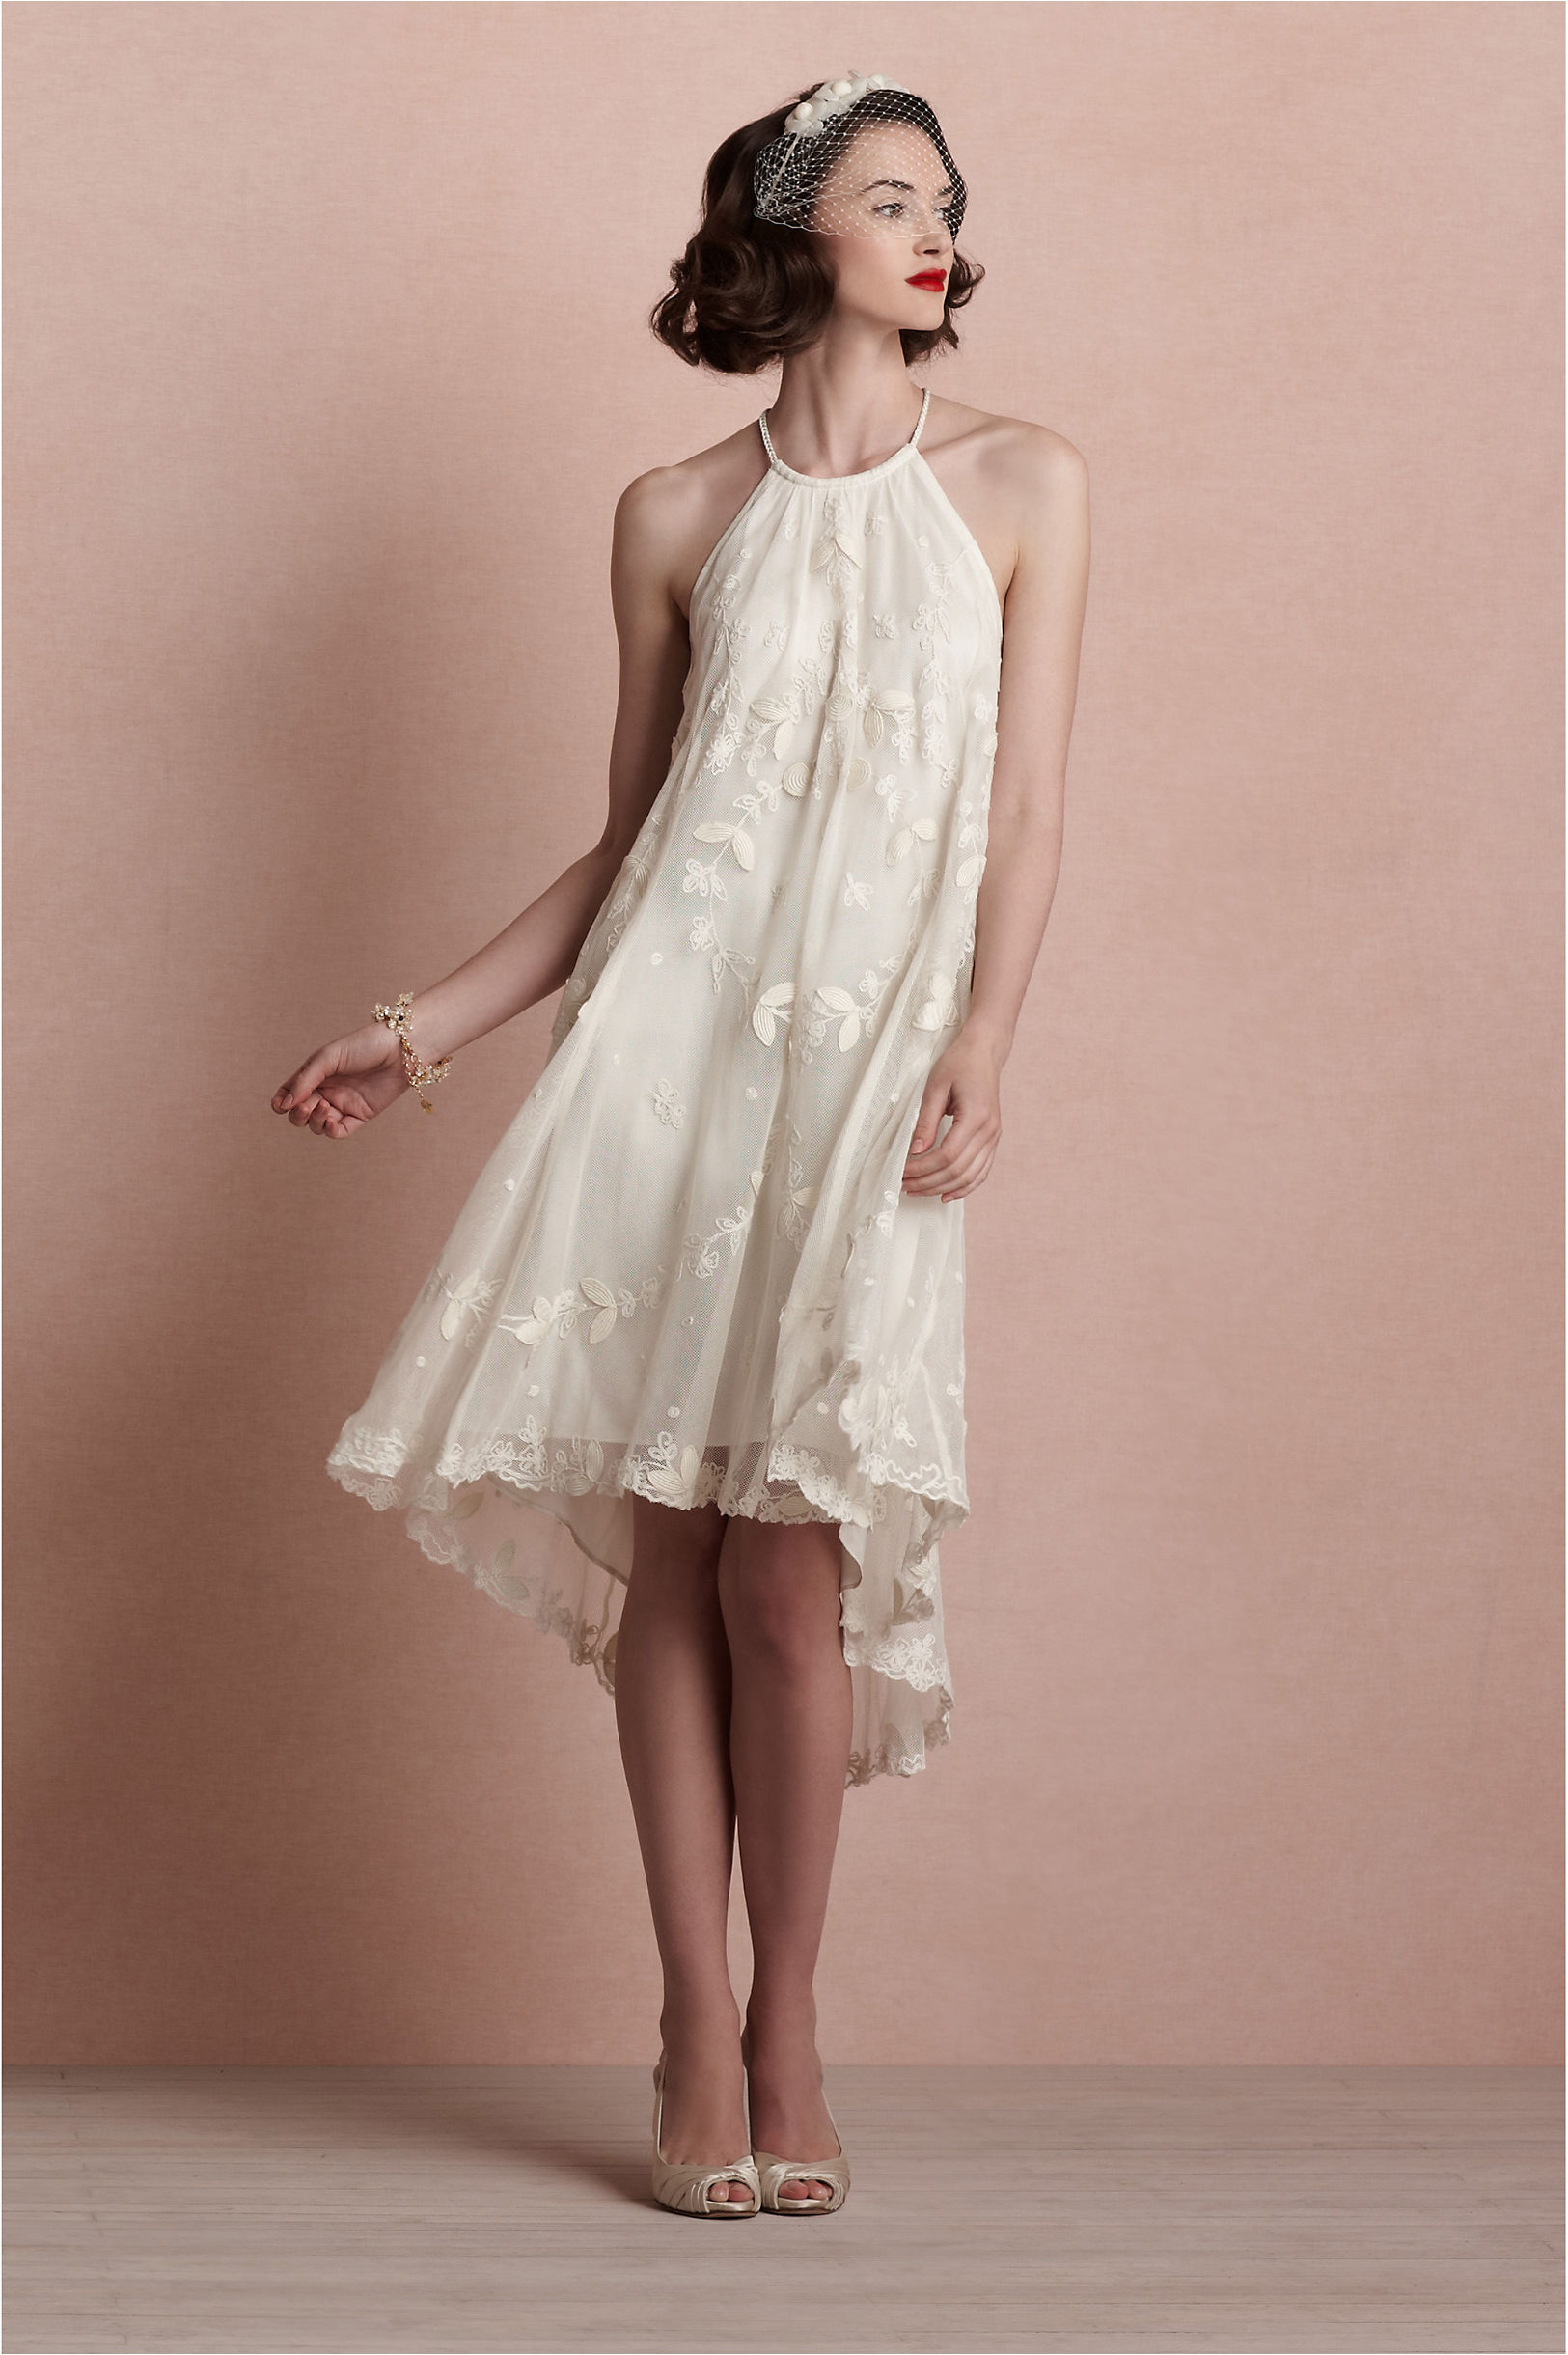 BHLDN 2013 Spring Bridal Collection | The FashionBrides